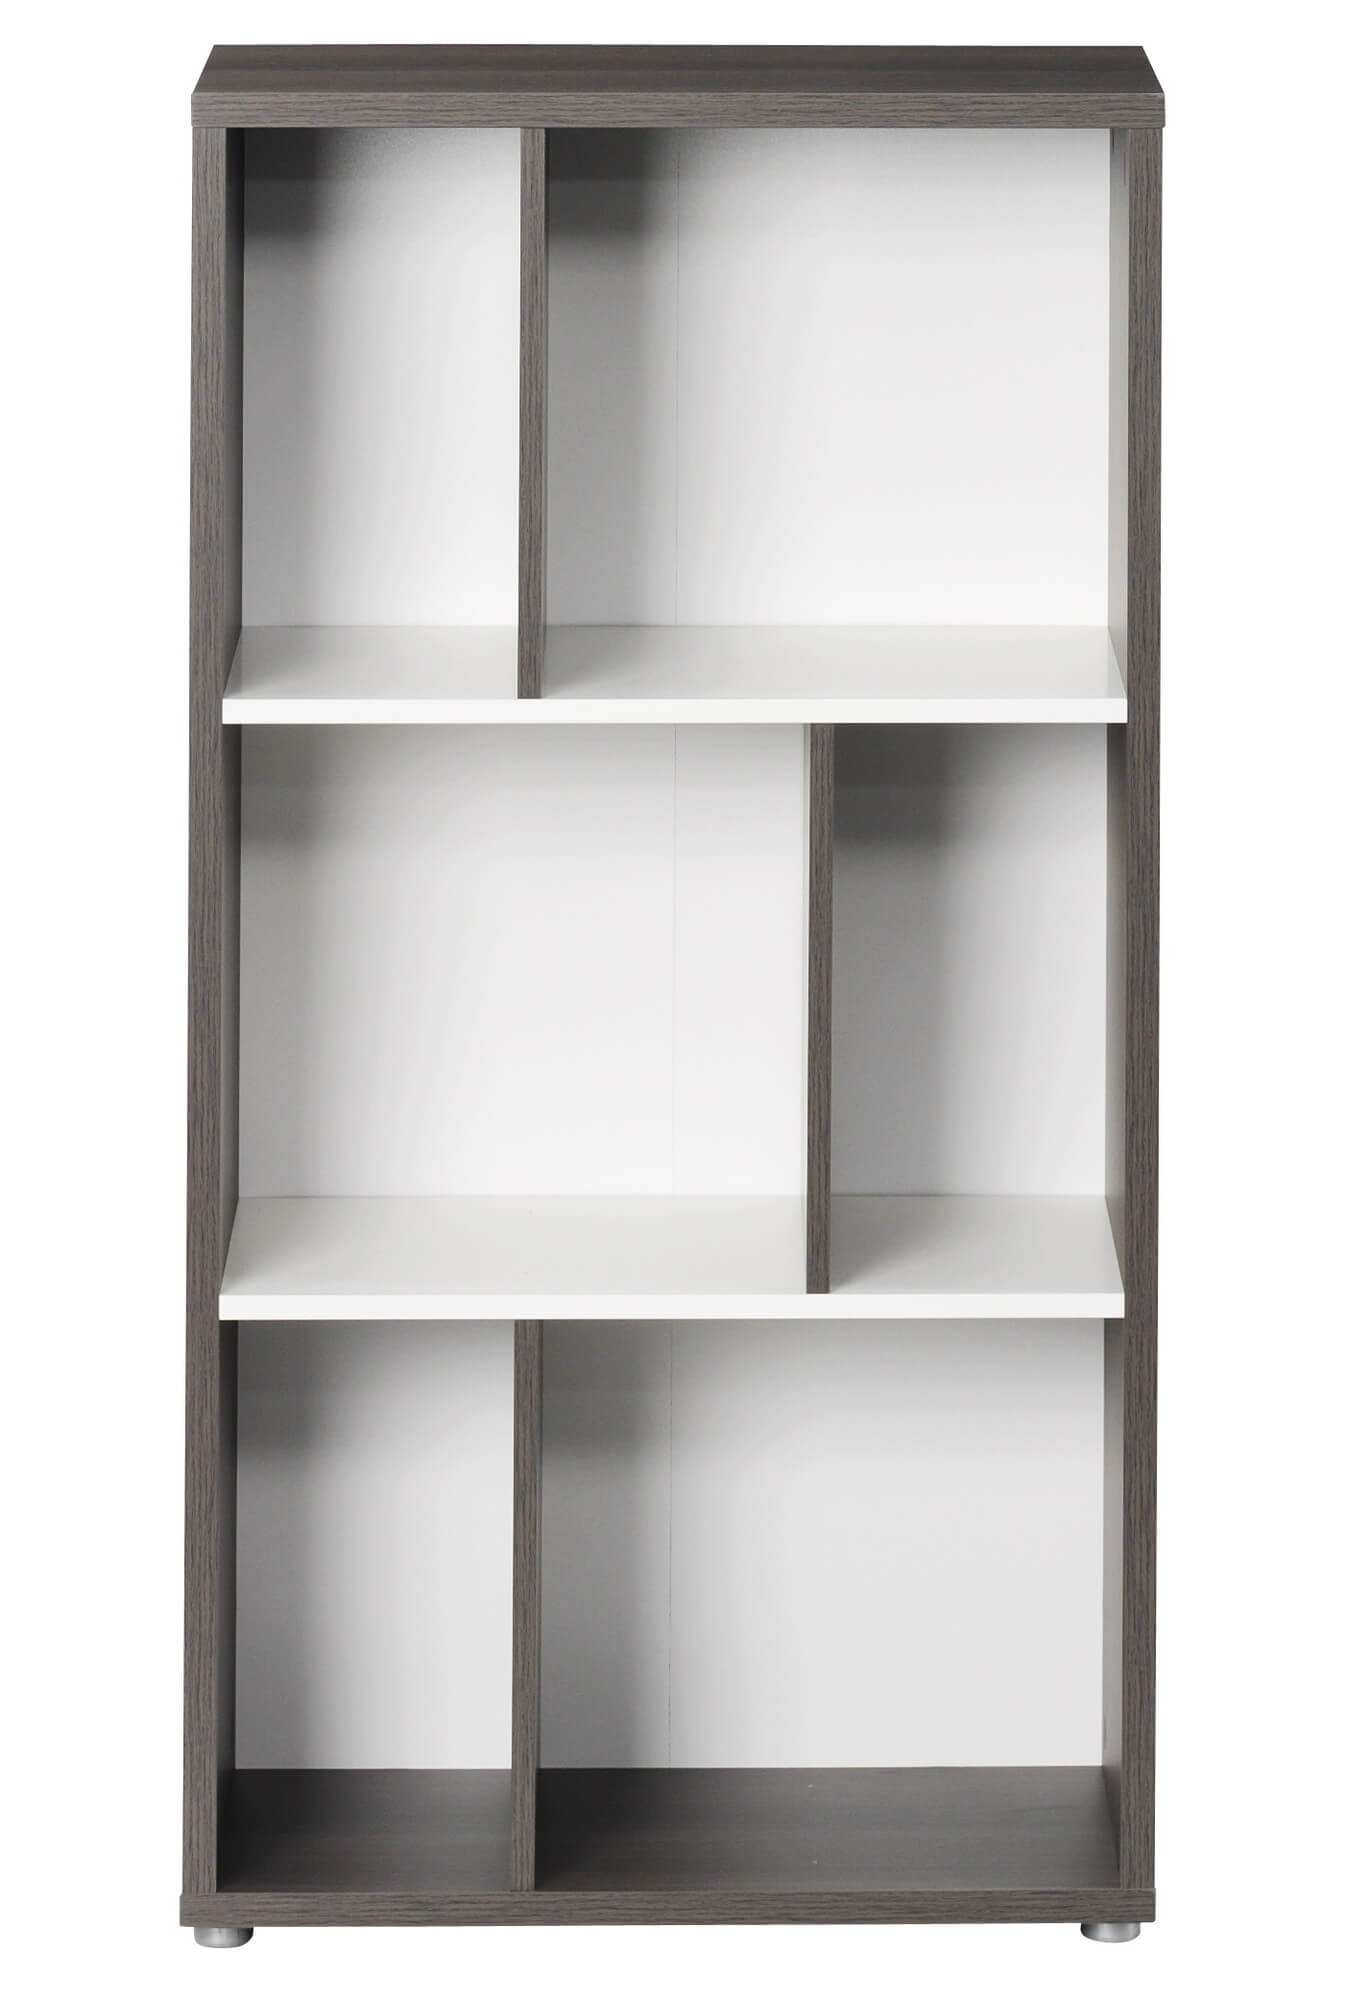 Cube Storage Shelves 15 6 Cube Bookcases Shelves And Storage Options